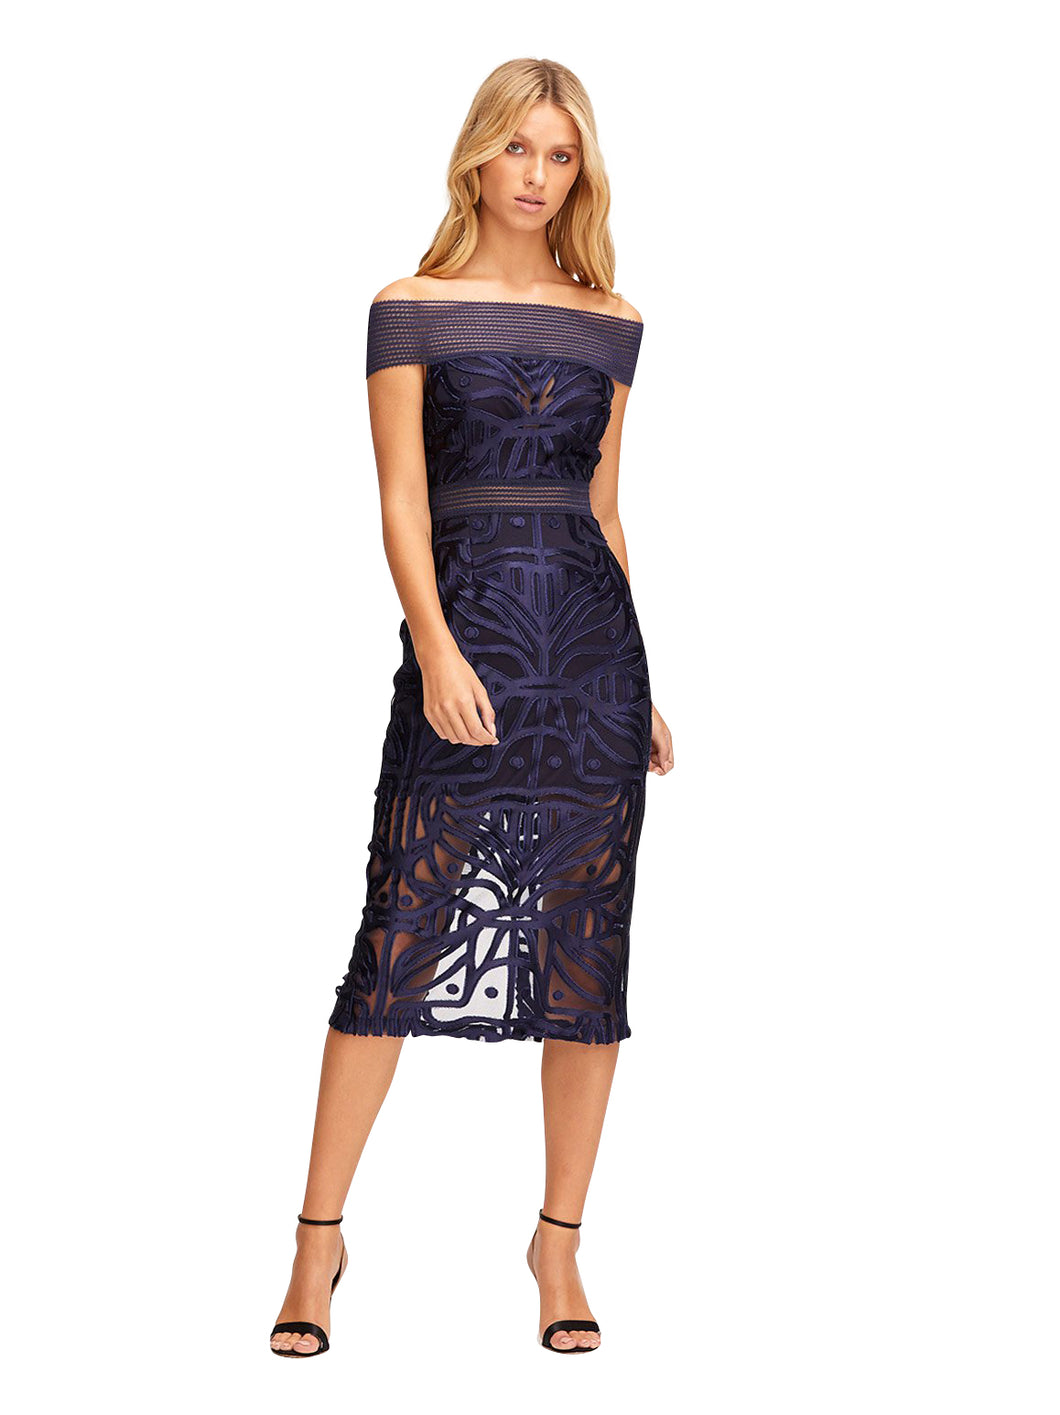 LUNAR ECLIPSE MIDI DRESS